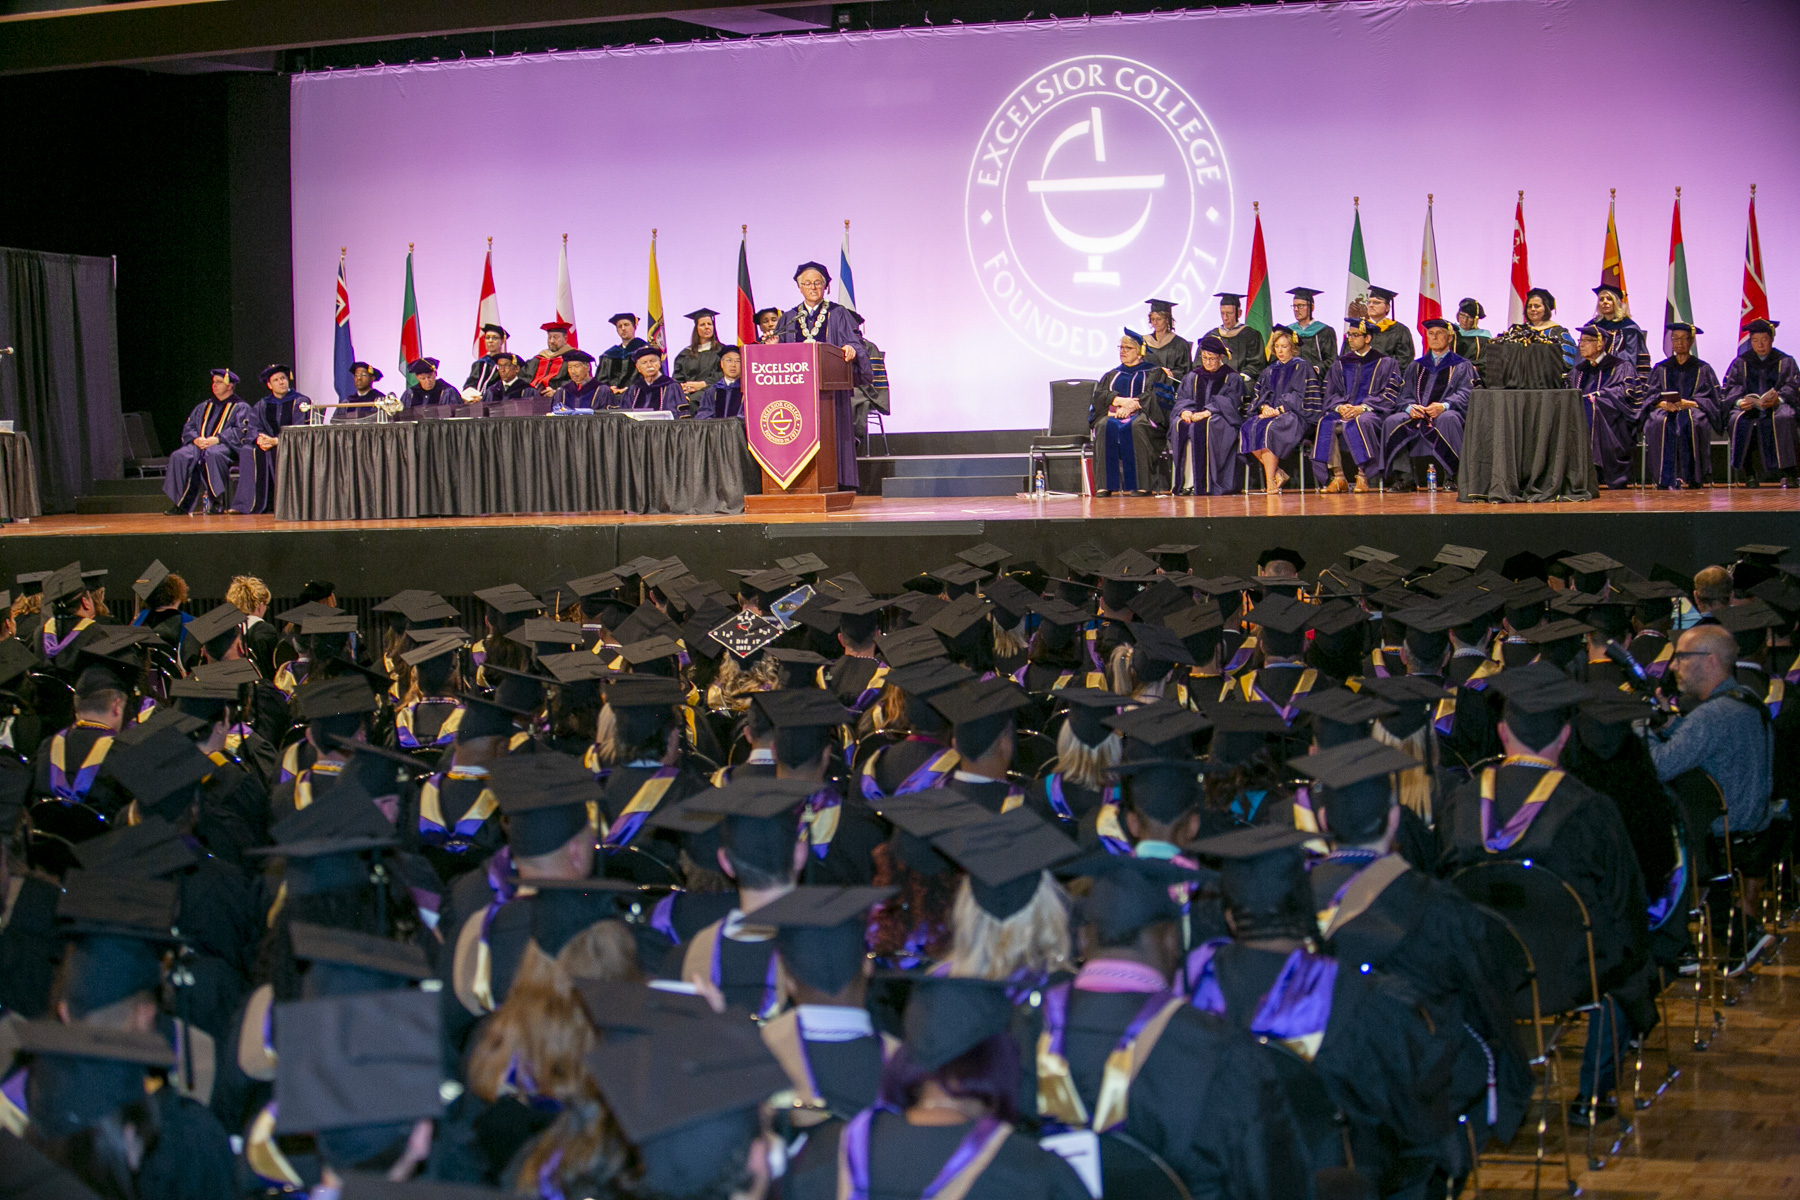 President Baldwin addresses the graduates at Commencement 2018 for Excelsior College